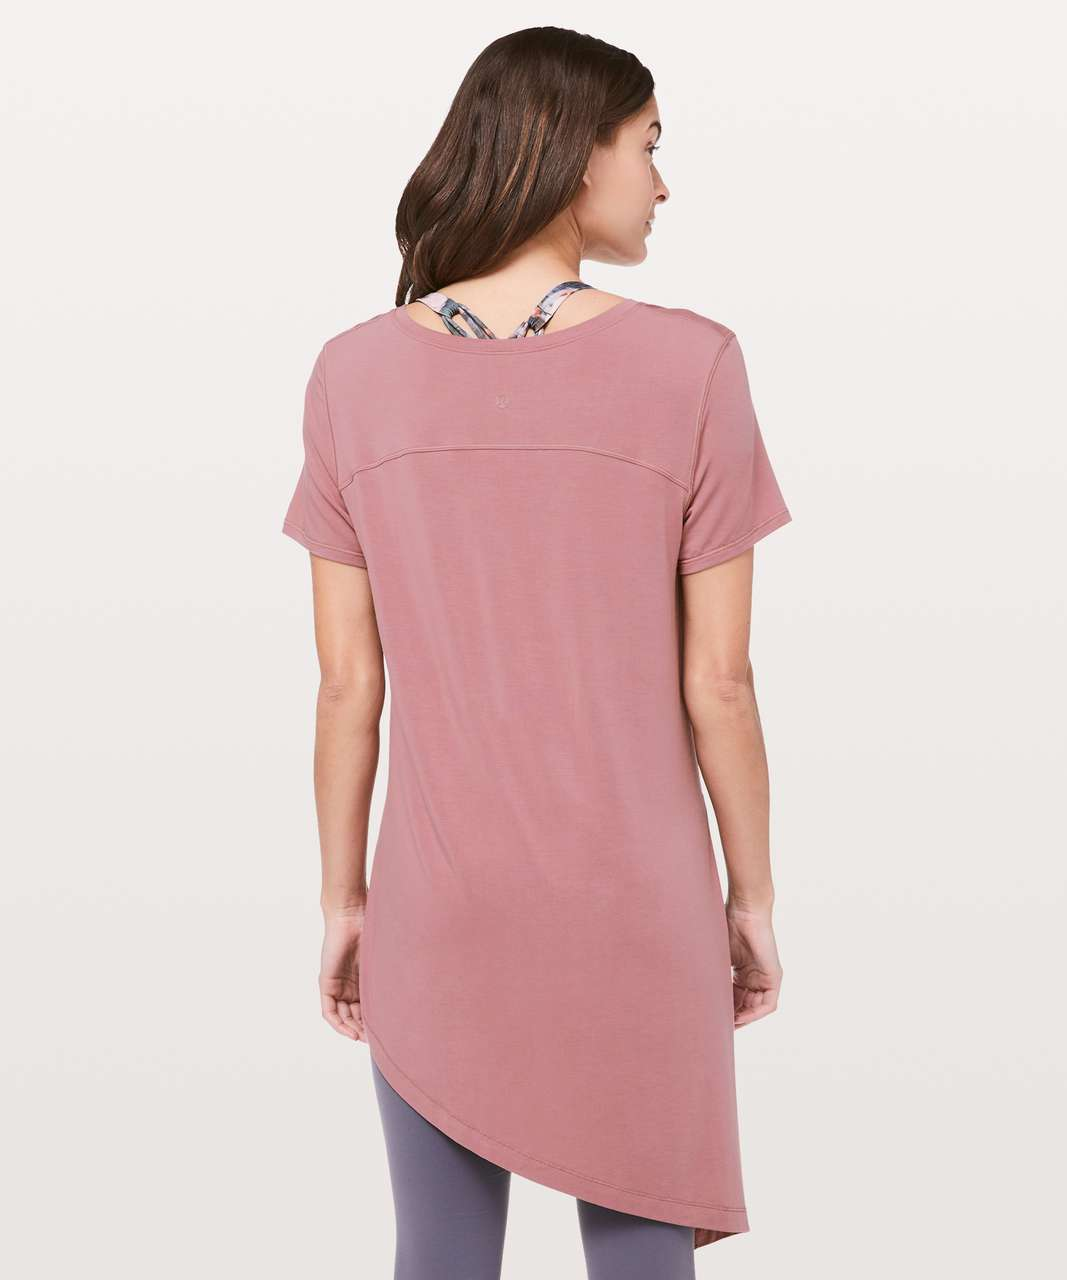 Lululemon To The Point Tee - Quicksand